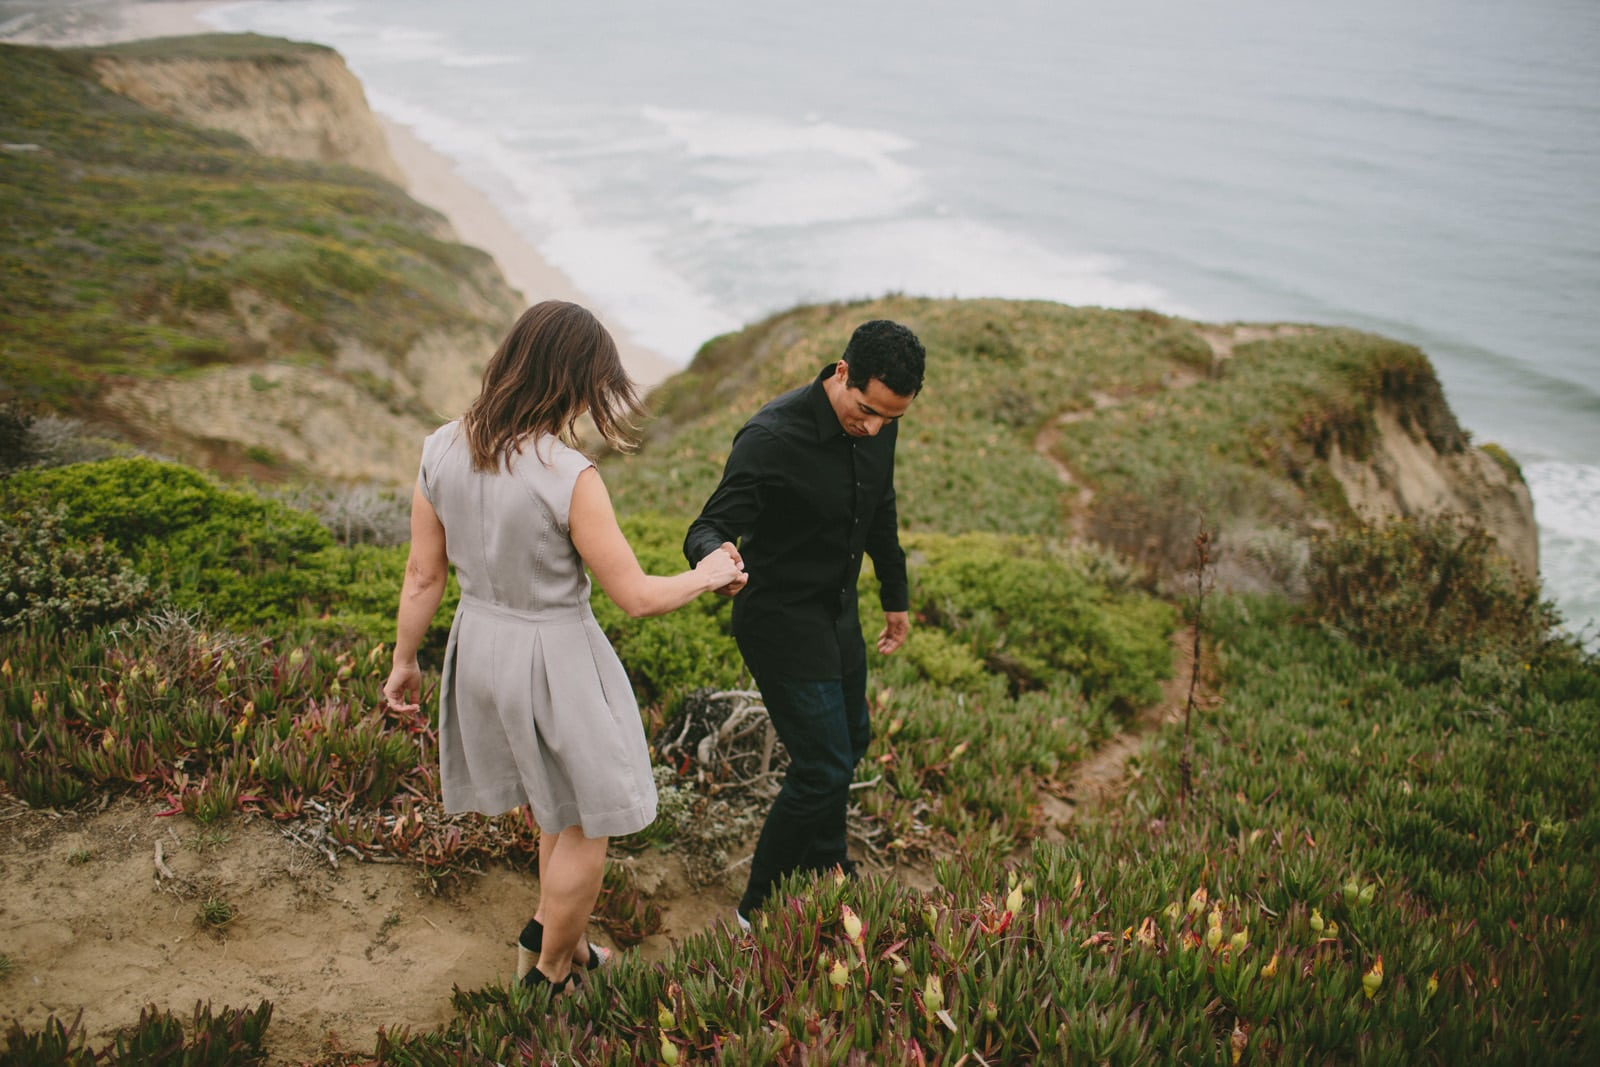 bay_area_wedding_photographer_pescadero_wedding_0013